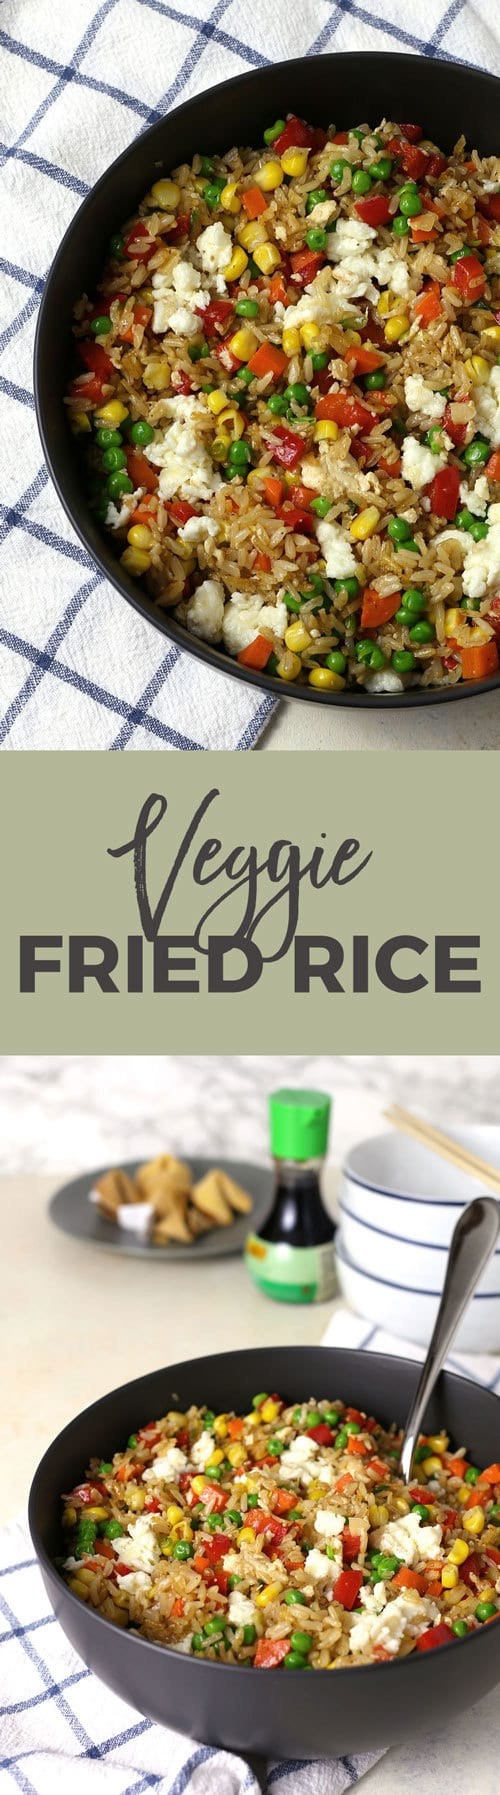 veggie fried rice long pin